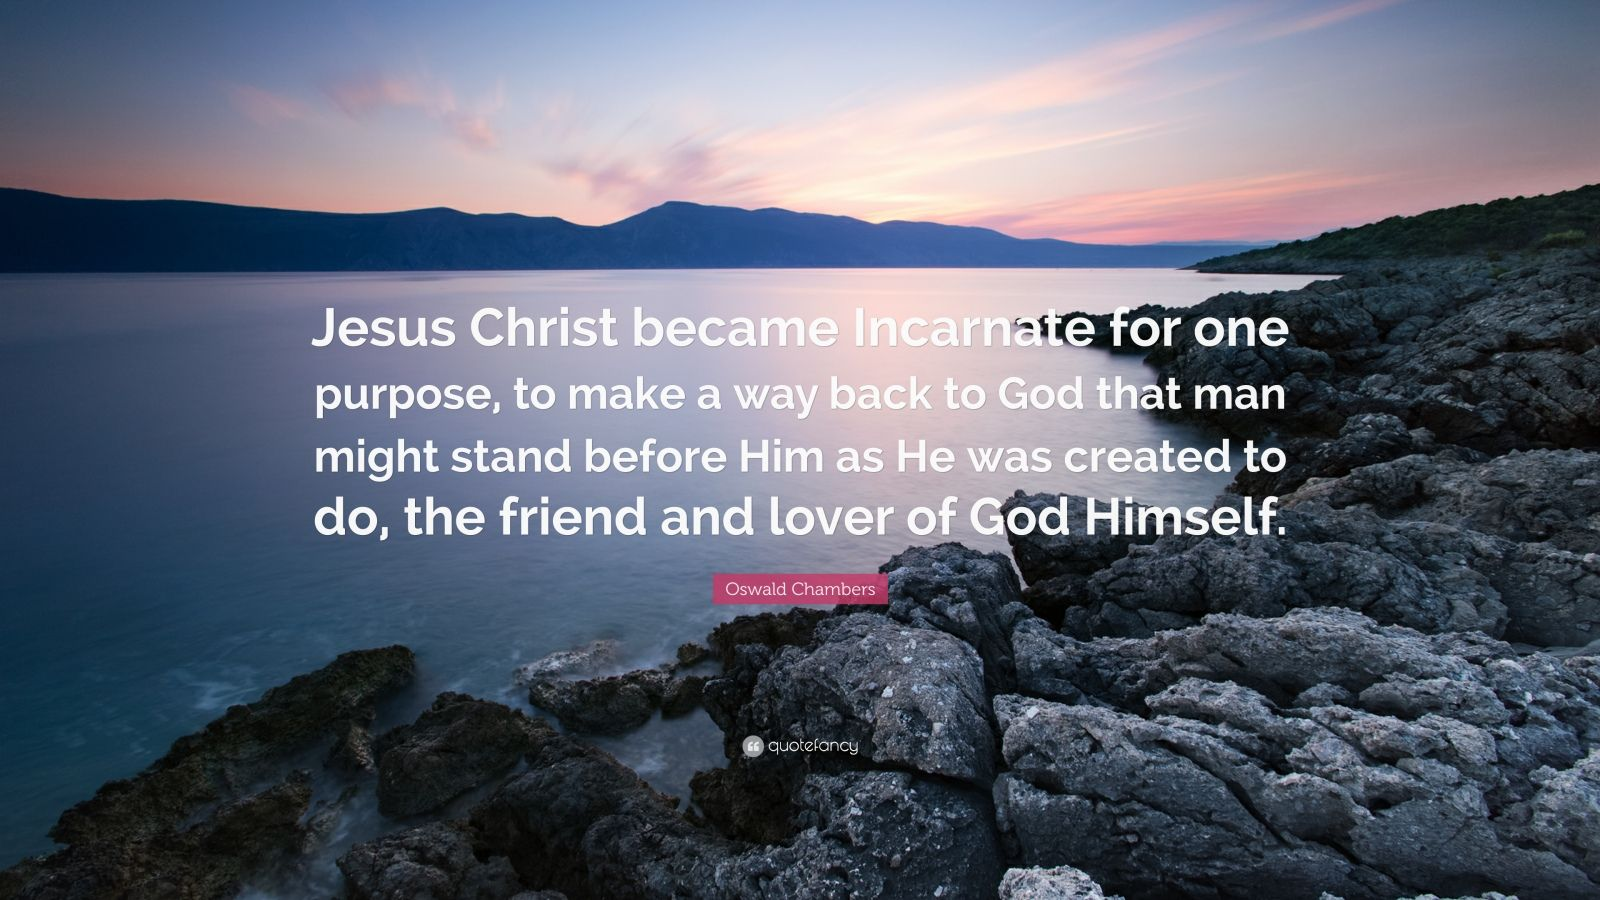 """Oswald Chambers Quote: """"Jesus Christ became Incarnate for one purpose, to make a way back to God that man might stand before Him as He was created to do, the friend and lover of God Himself."""""""